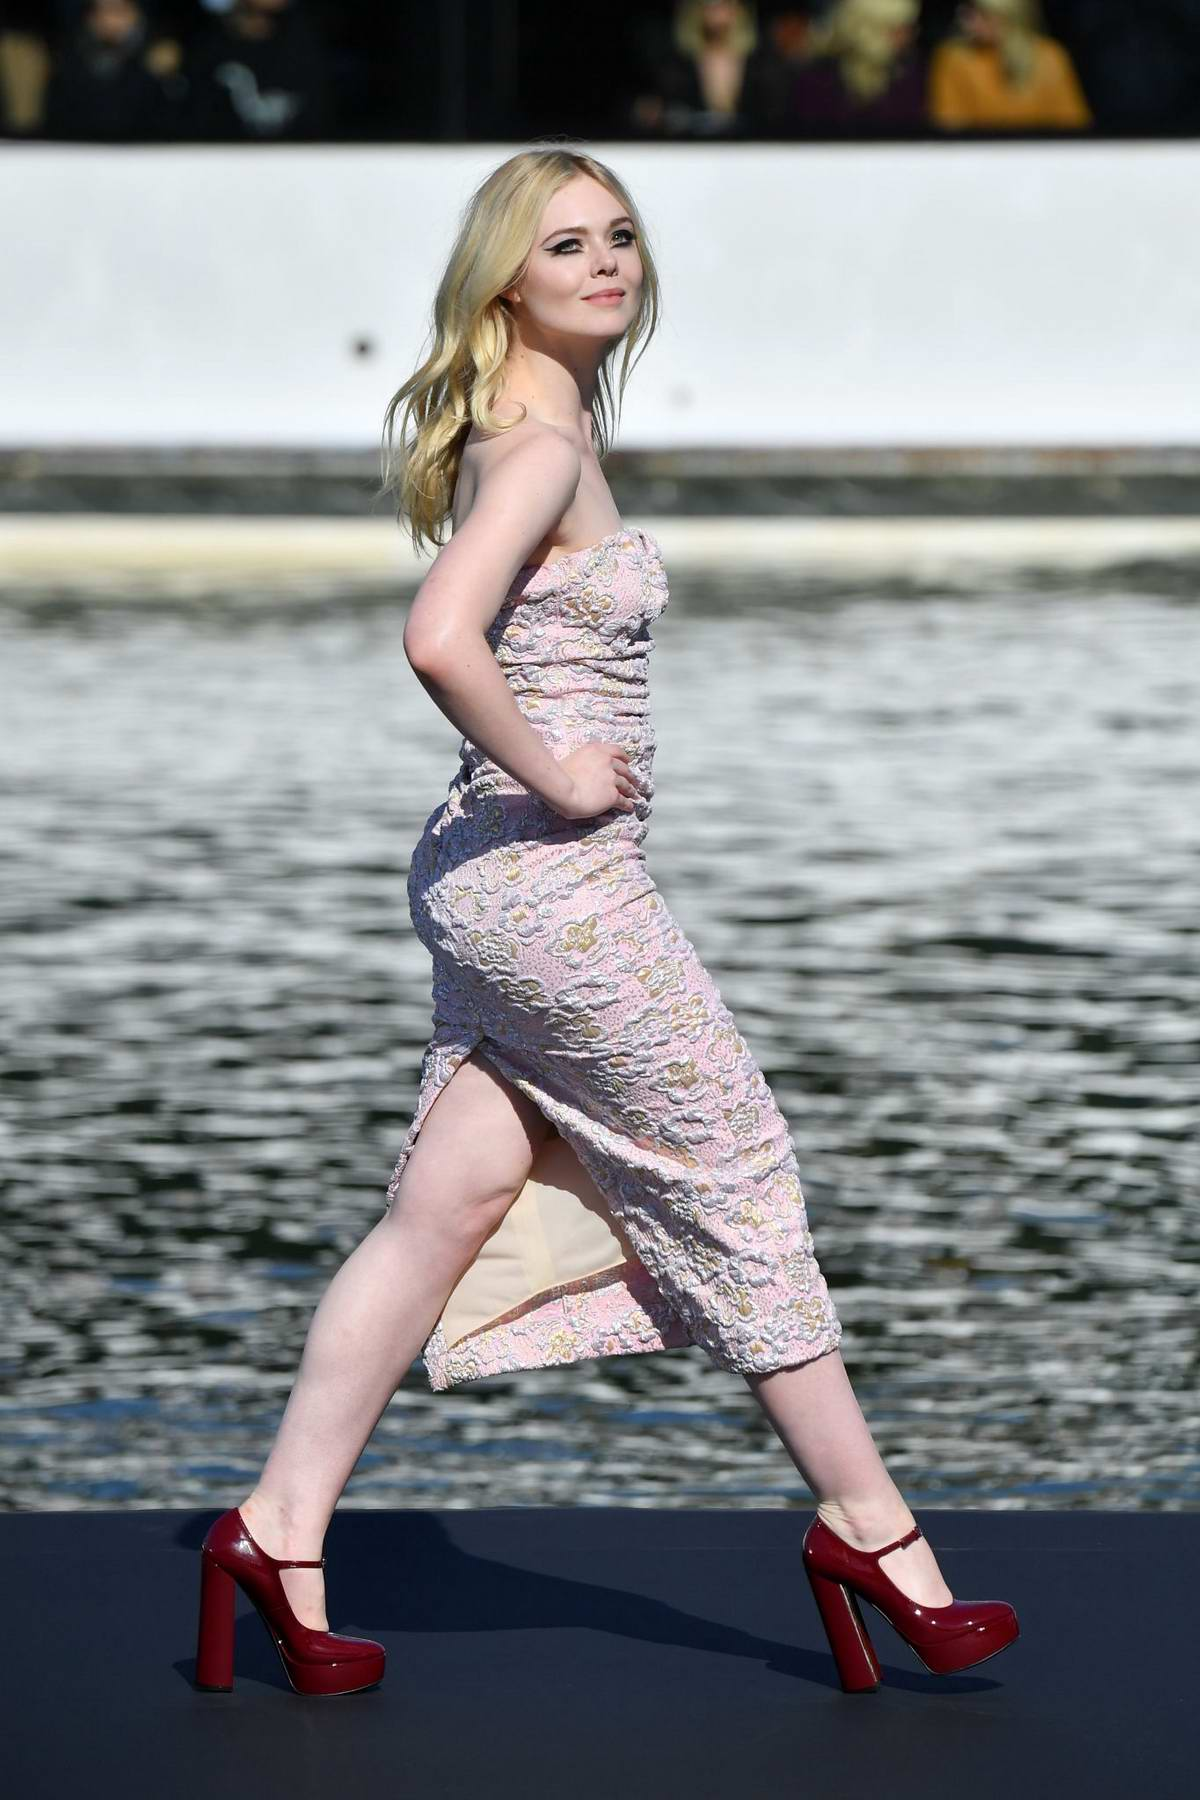 Elle Fanning walks the runway for the L'Oreal Fashion Show during Paris Fashion Week in Paris, France